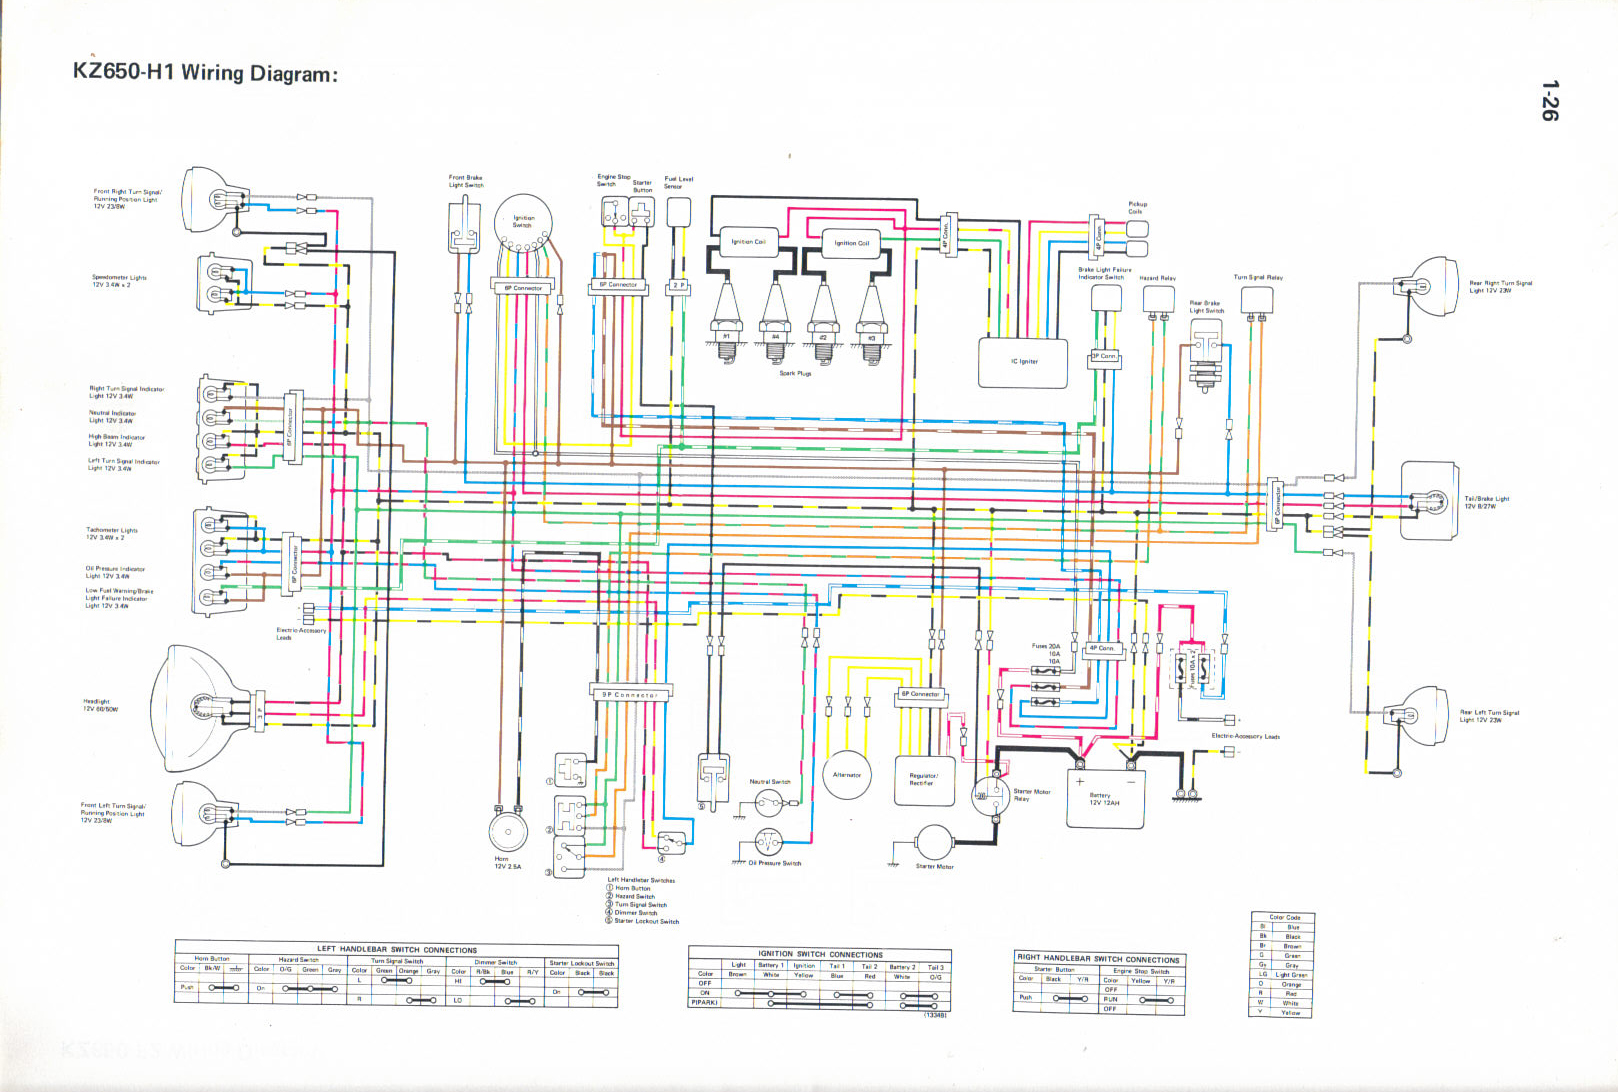 KZ650 H1 89 kz440 ltd wiring diagram,ltd \u2022 indy500 co  at creativeand.co